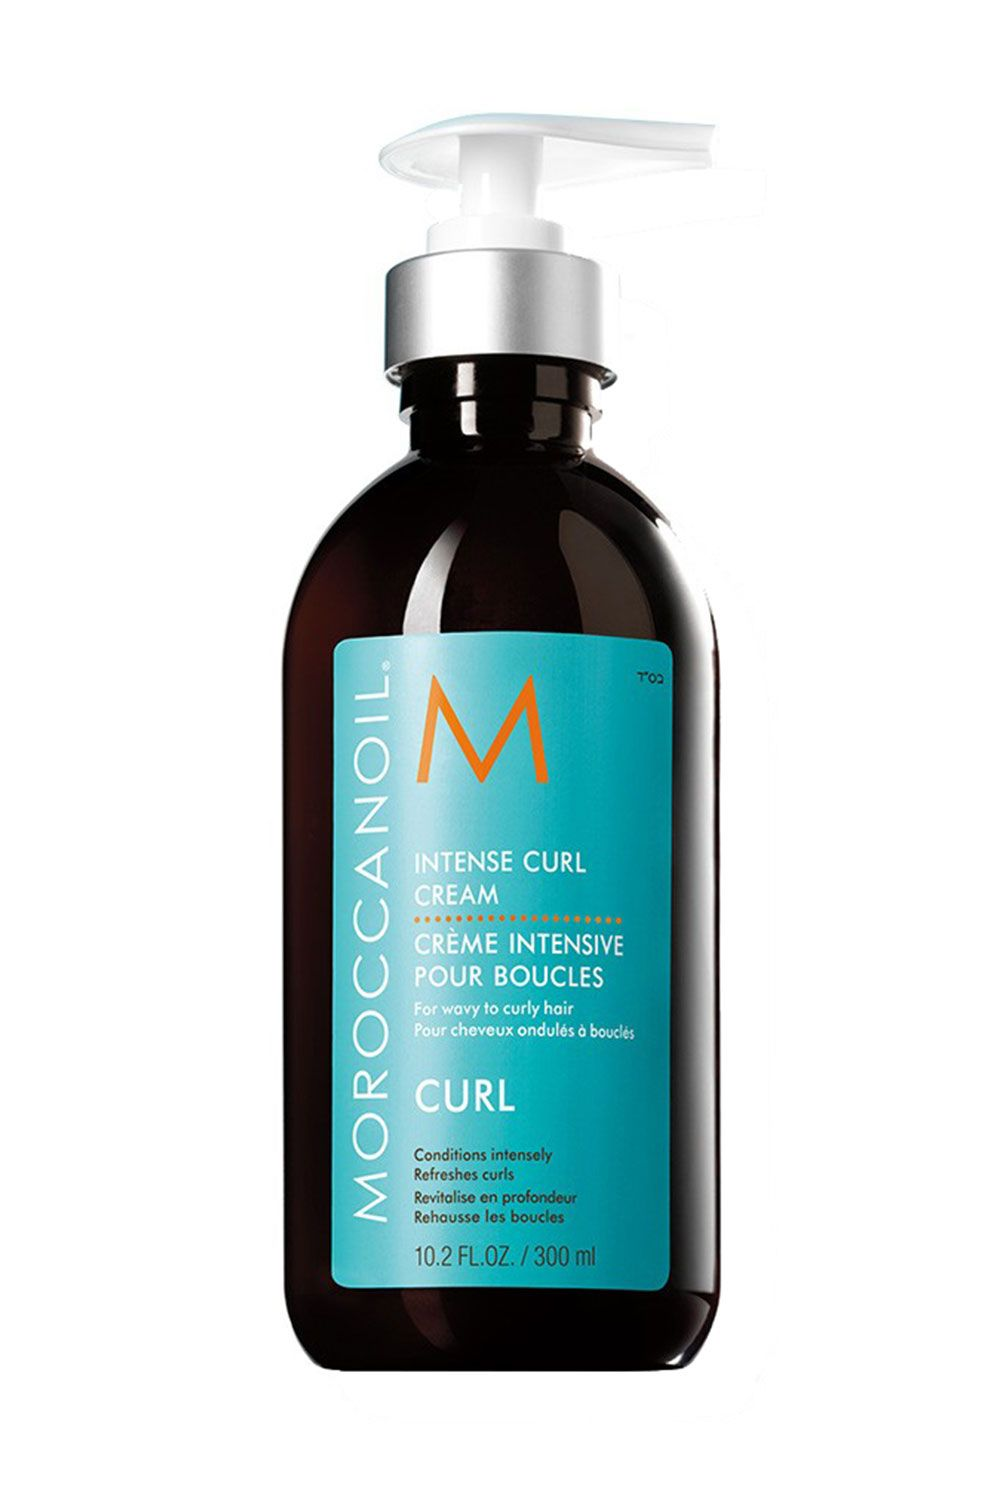 "<p>The gist: this leave-in conditioner moisturizes, fights frizz, and keeps things looking *damn good* all day. Plus, our curly-haired beauty guru highly recommends, so honestly if that doesn't sell you I don't know what will. </p><p>$34, <a href=""http://www.moroccanoil.com/us_en/hair-care-intense-curl-cream-us"" target=""_blank"">moroccanoil.com</a></p>"